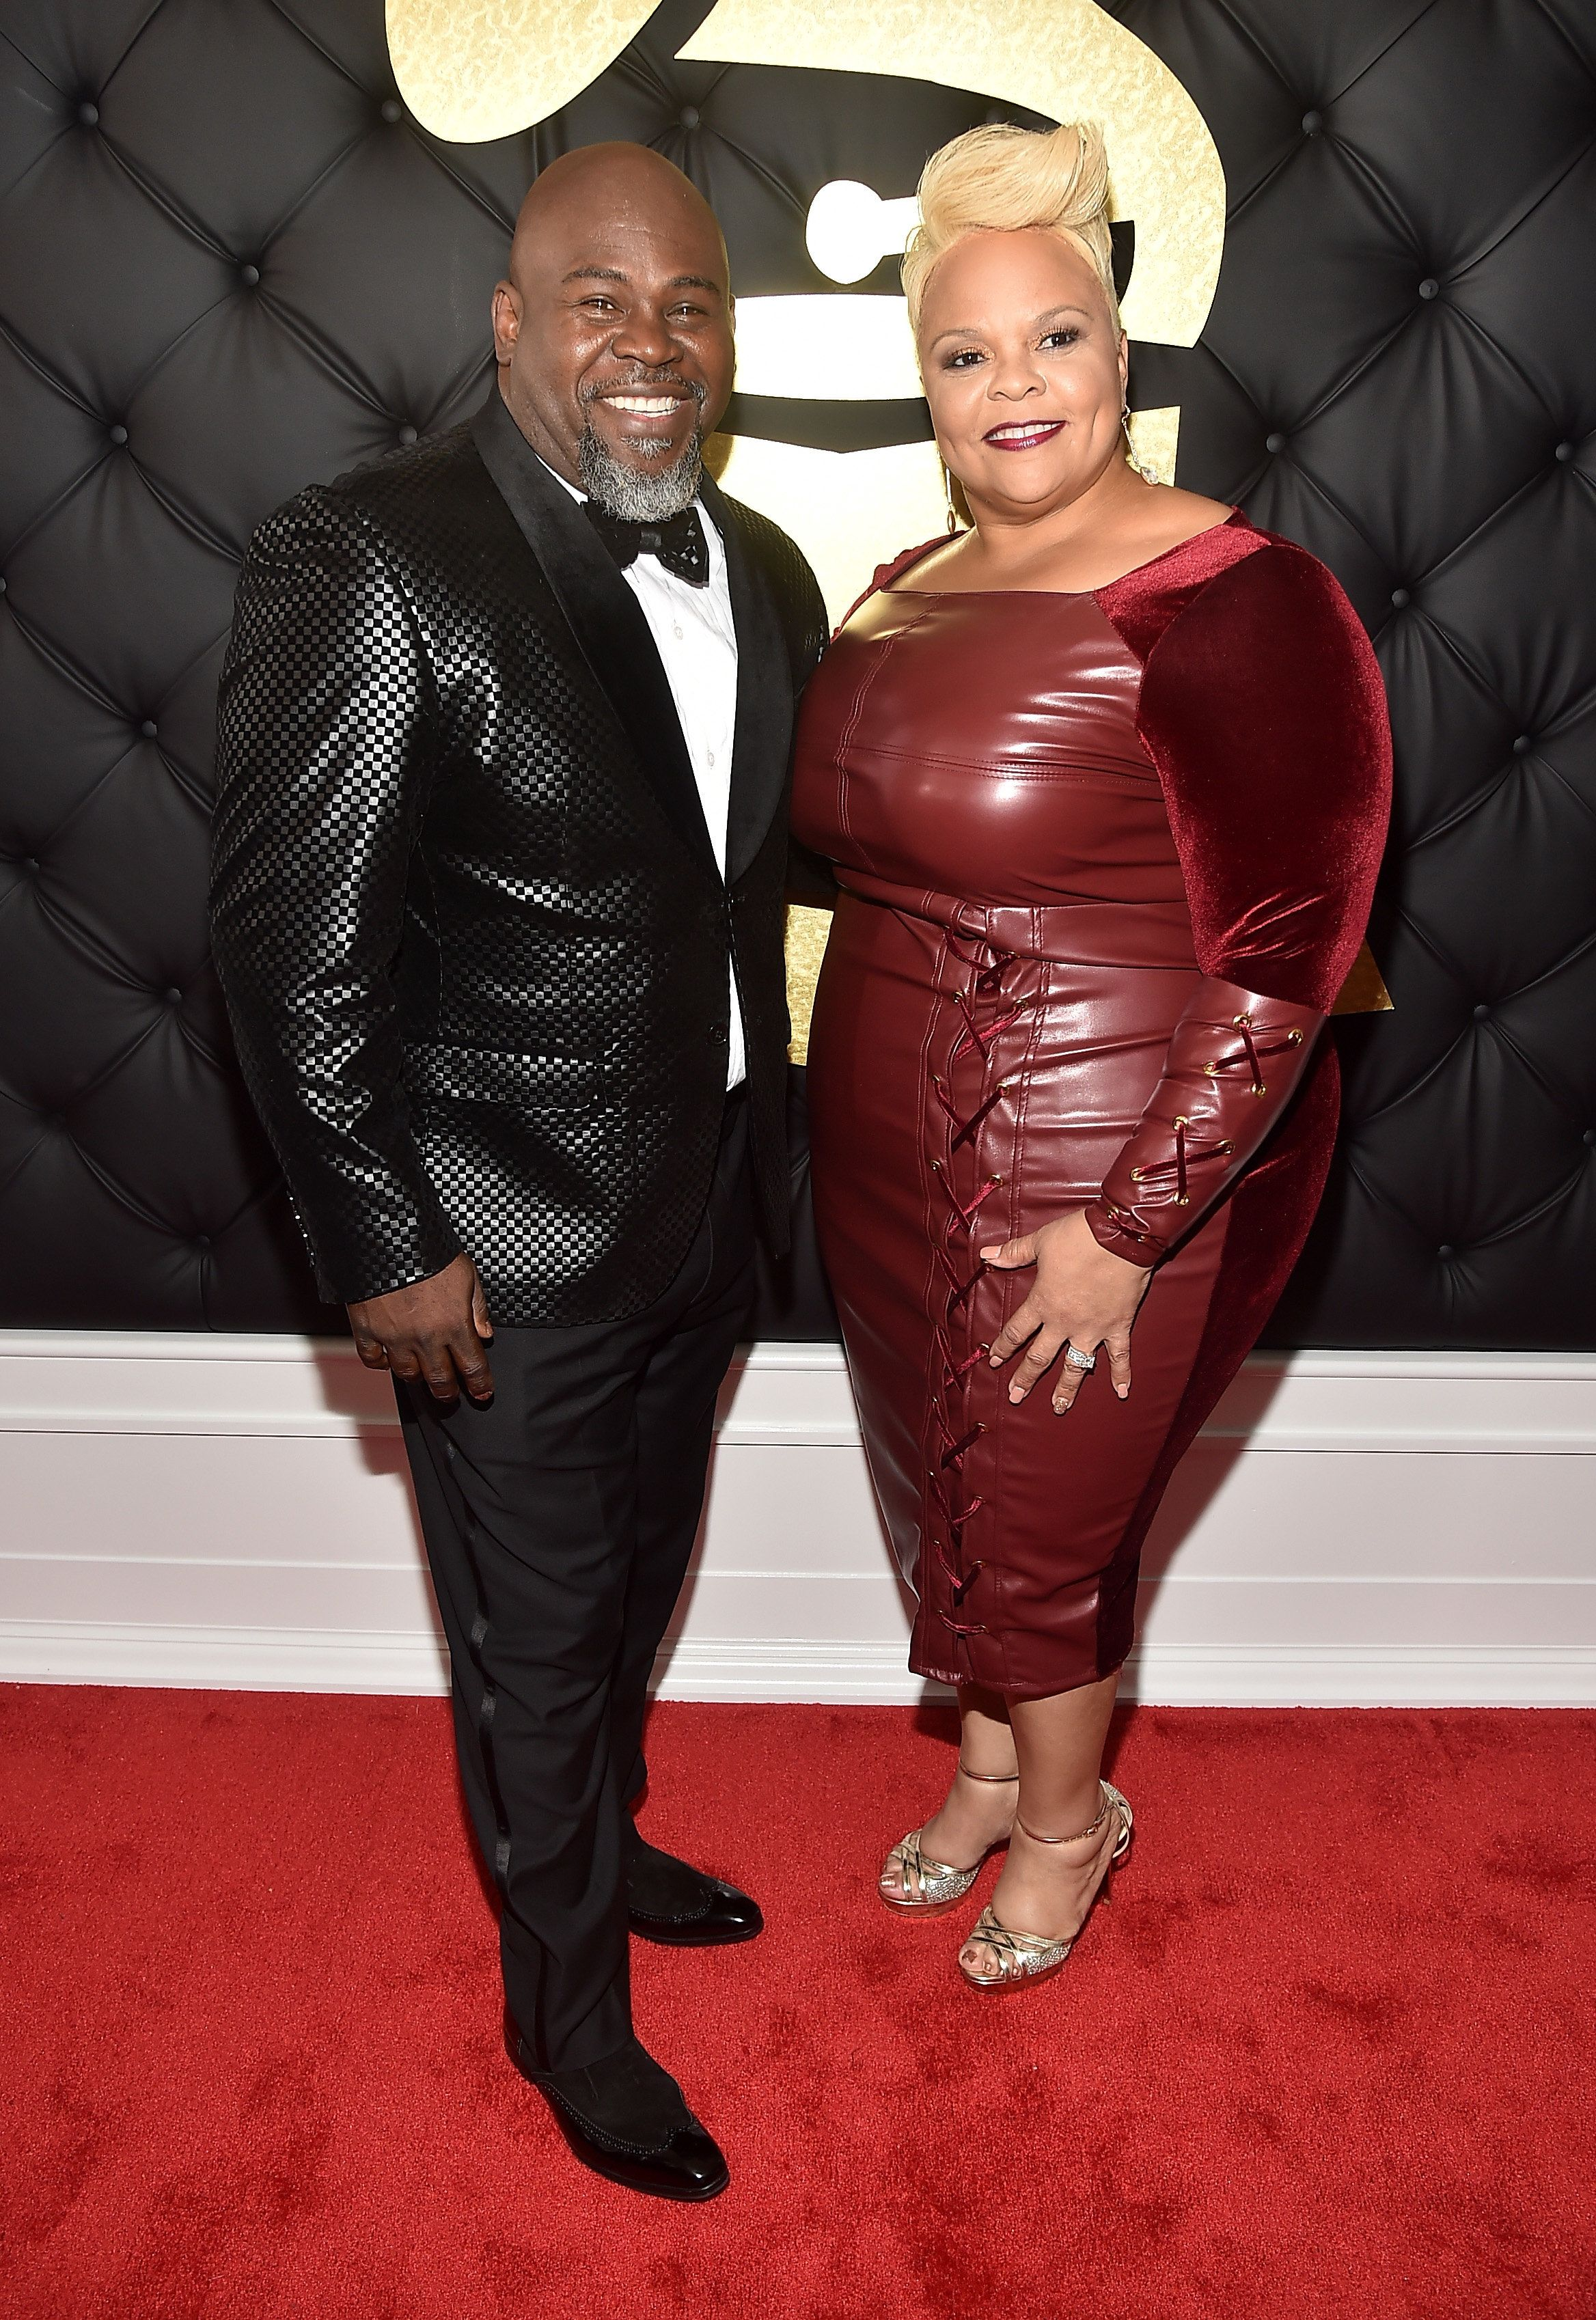 A Look At David And Tamela Mann's Love Through The Years ...